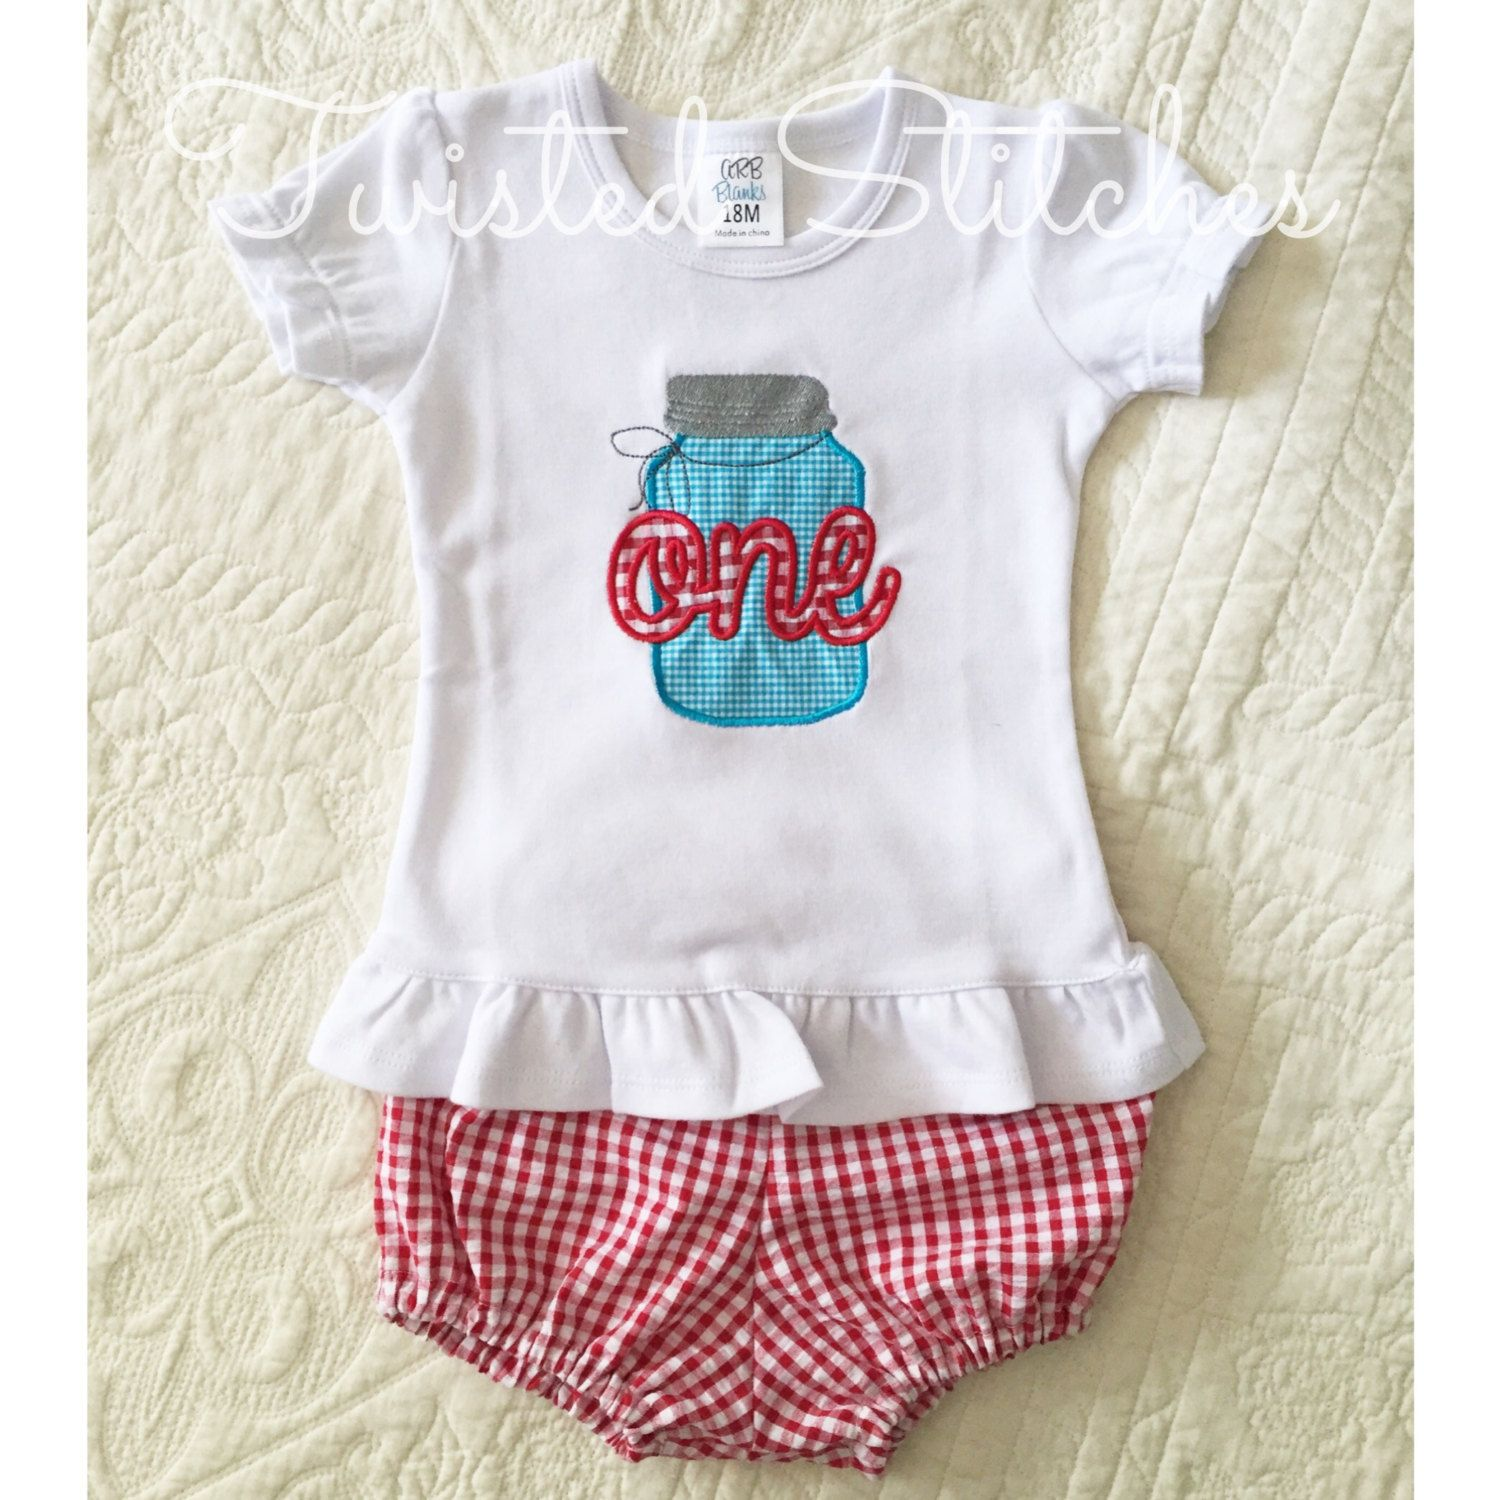 First Birthday Outfit Picnic Red Gingham Bloomers And Shirt Set Mason Jar Applique Southern By JennsTwistedStitches On